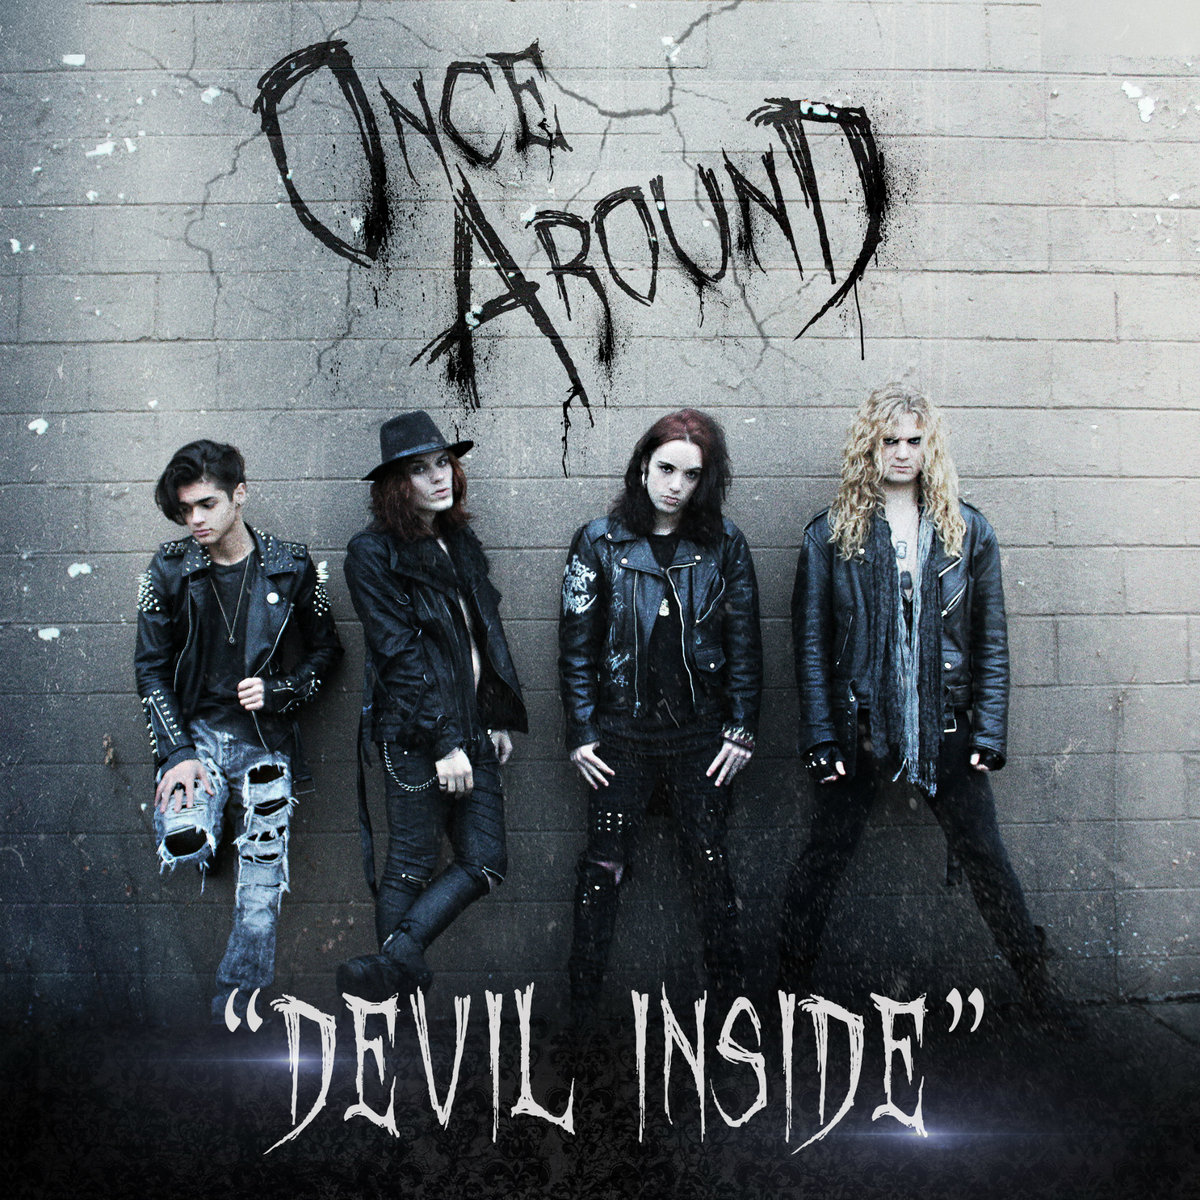 Devil Inside by ONCE AROUND